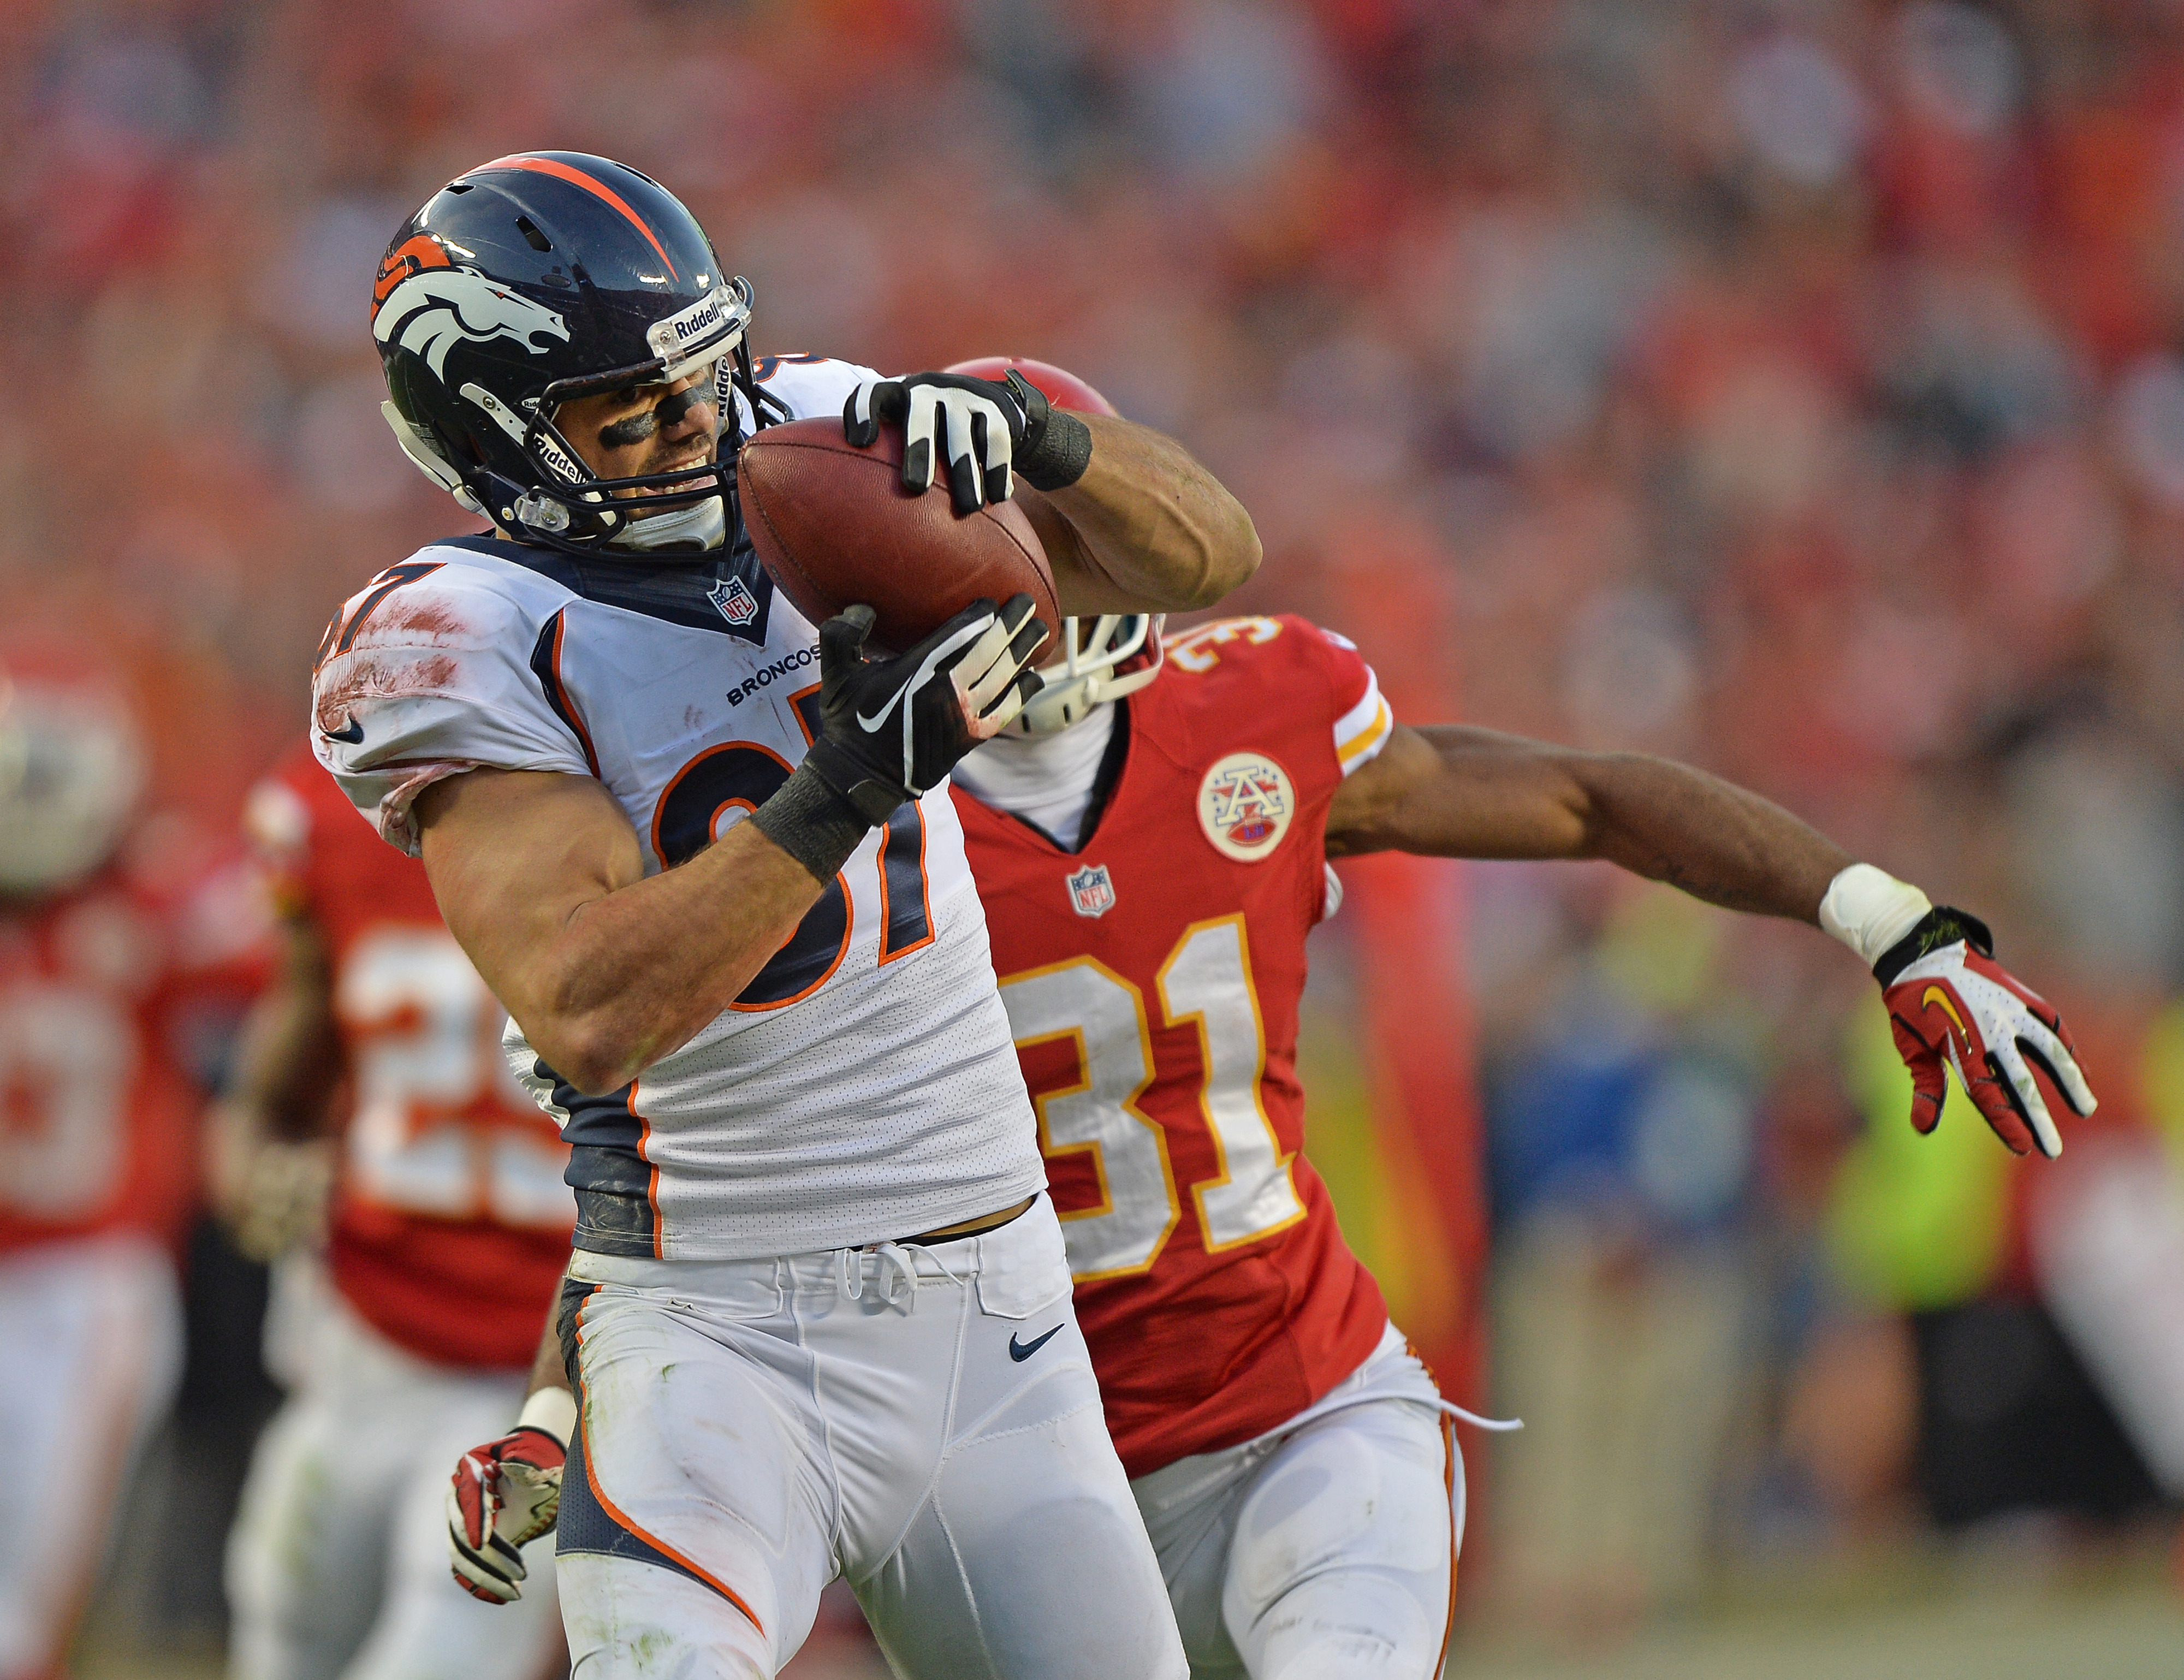 Broncos vs. Chiefs 2013: Peyton Manning 'operates at high level' in win